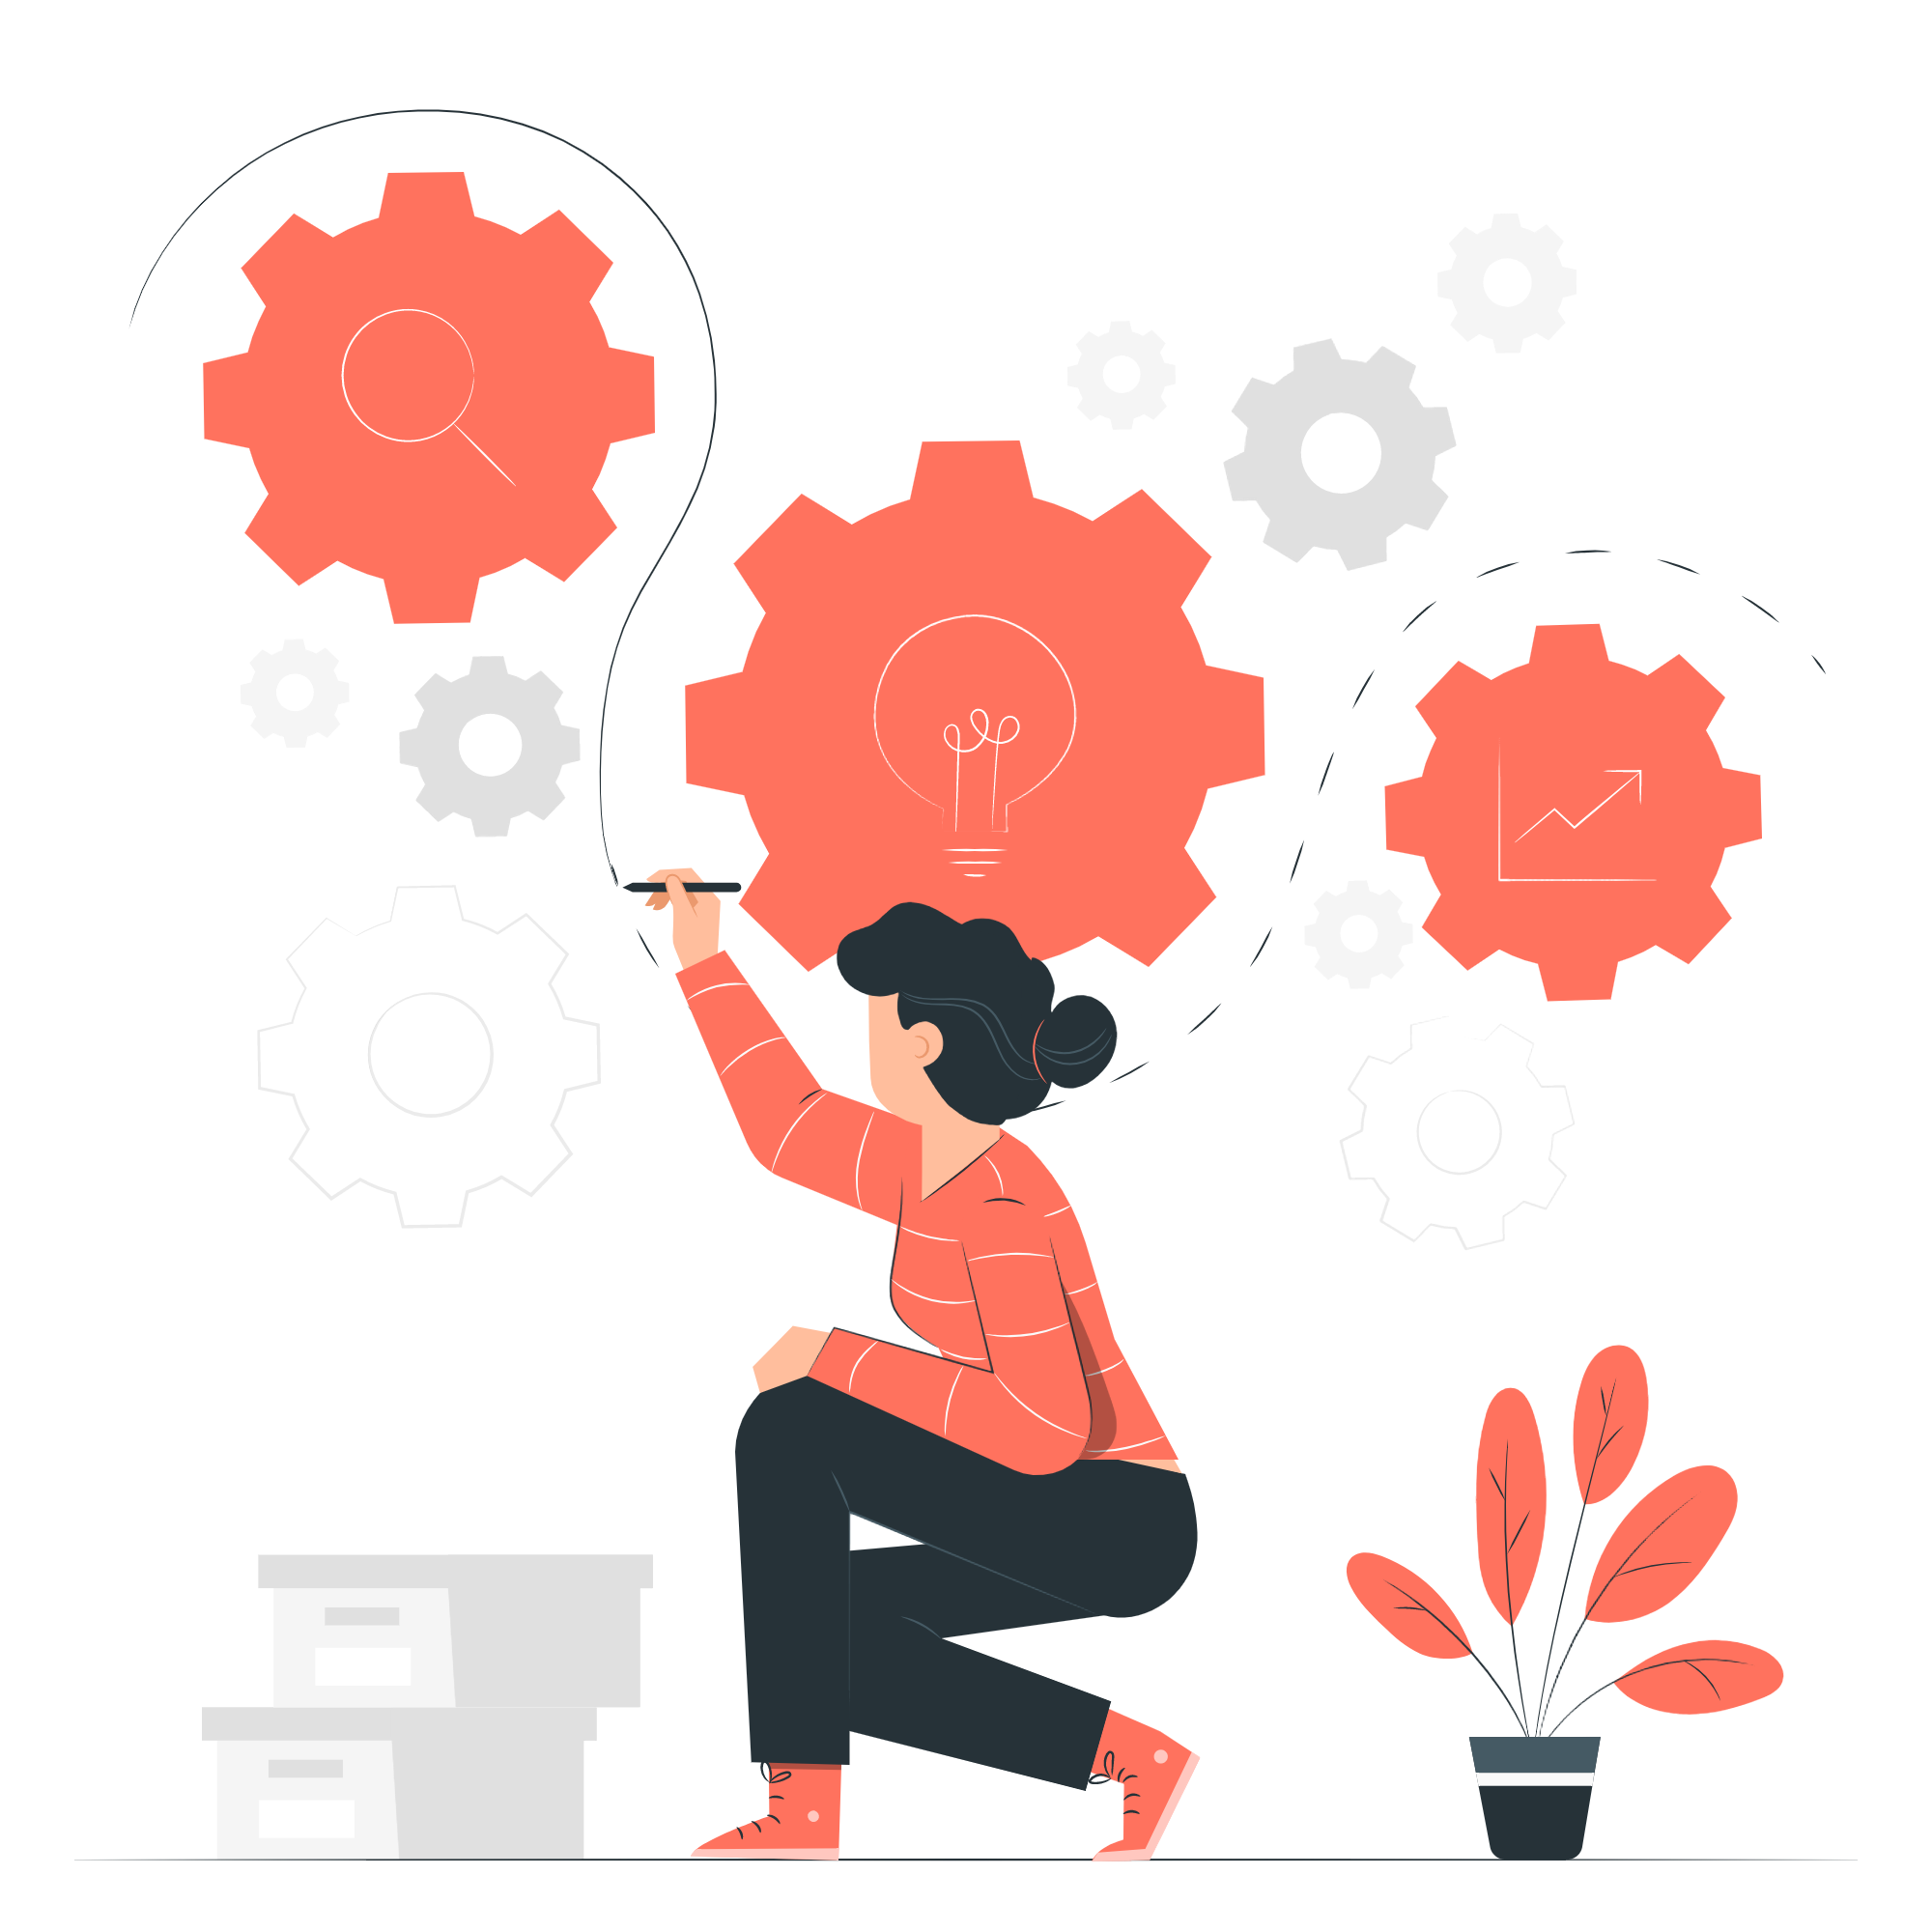 The illustration depicts a woman wearing an orange shirt and dark gray pants. She leans down on one knee as she draws on a wall, drawing a line connecting three gears. In the gears are a search symbol, a lightbulb, and a chart which convey signs of creativity.